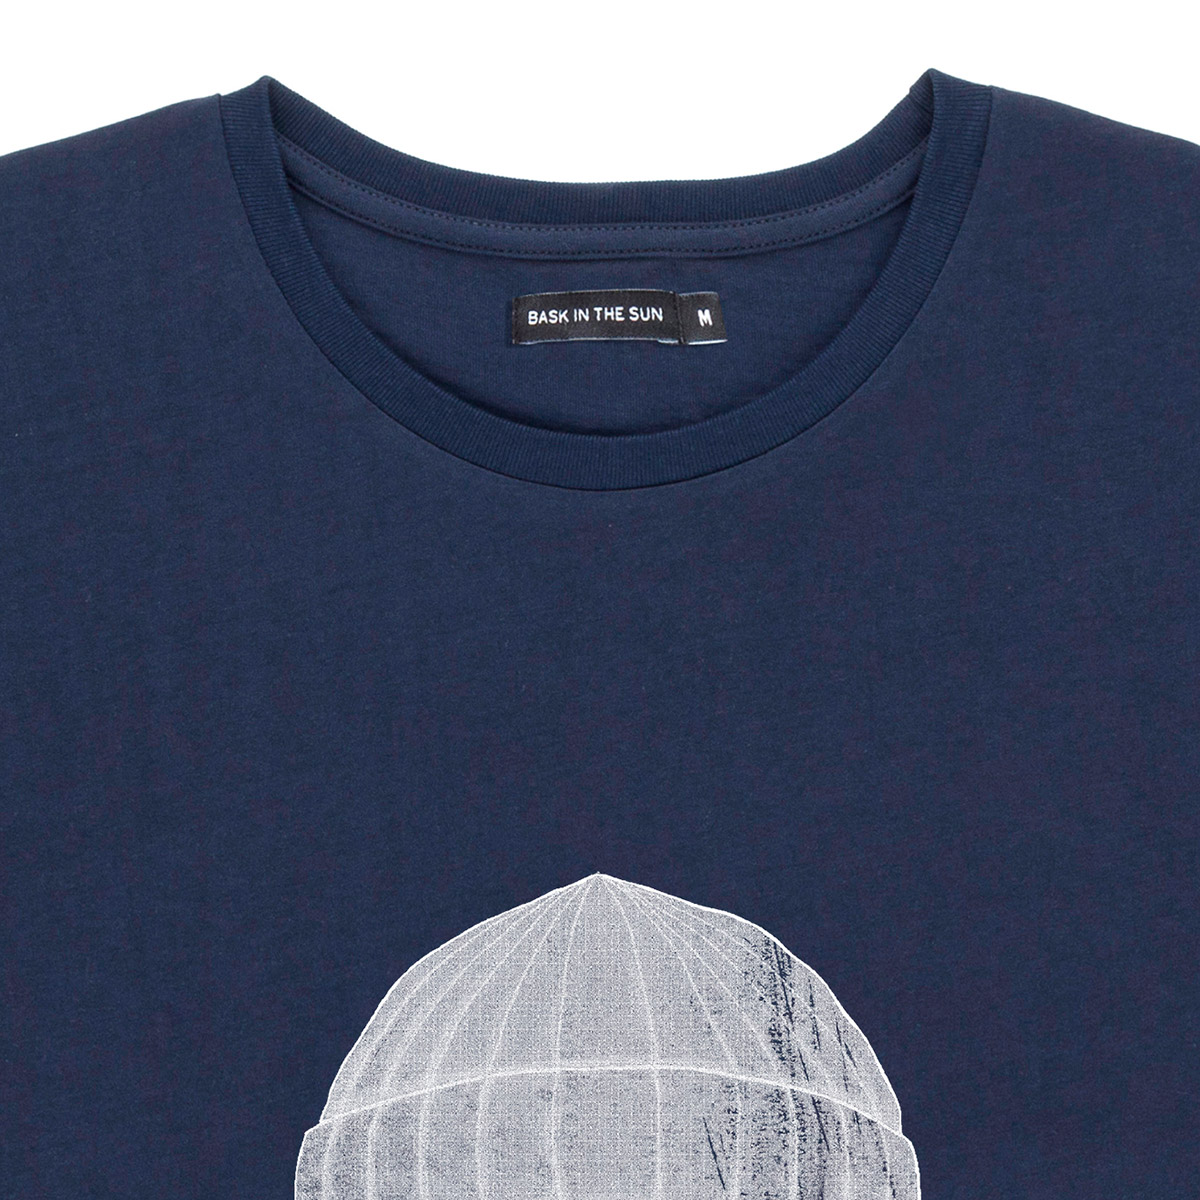 T-shirt en coton bio navy to the sea - Bask in the Sun num 2